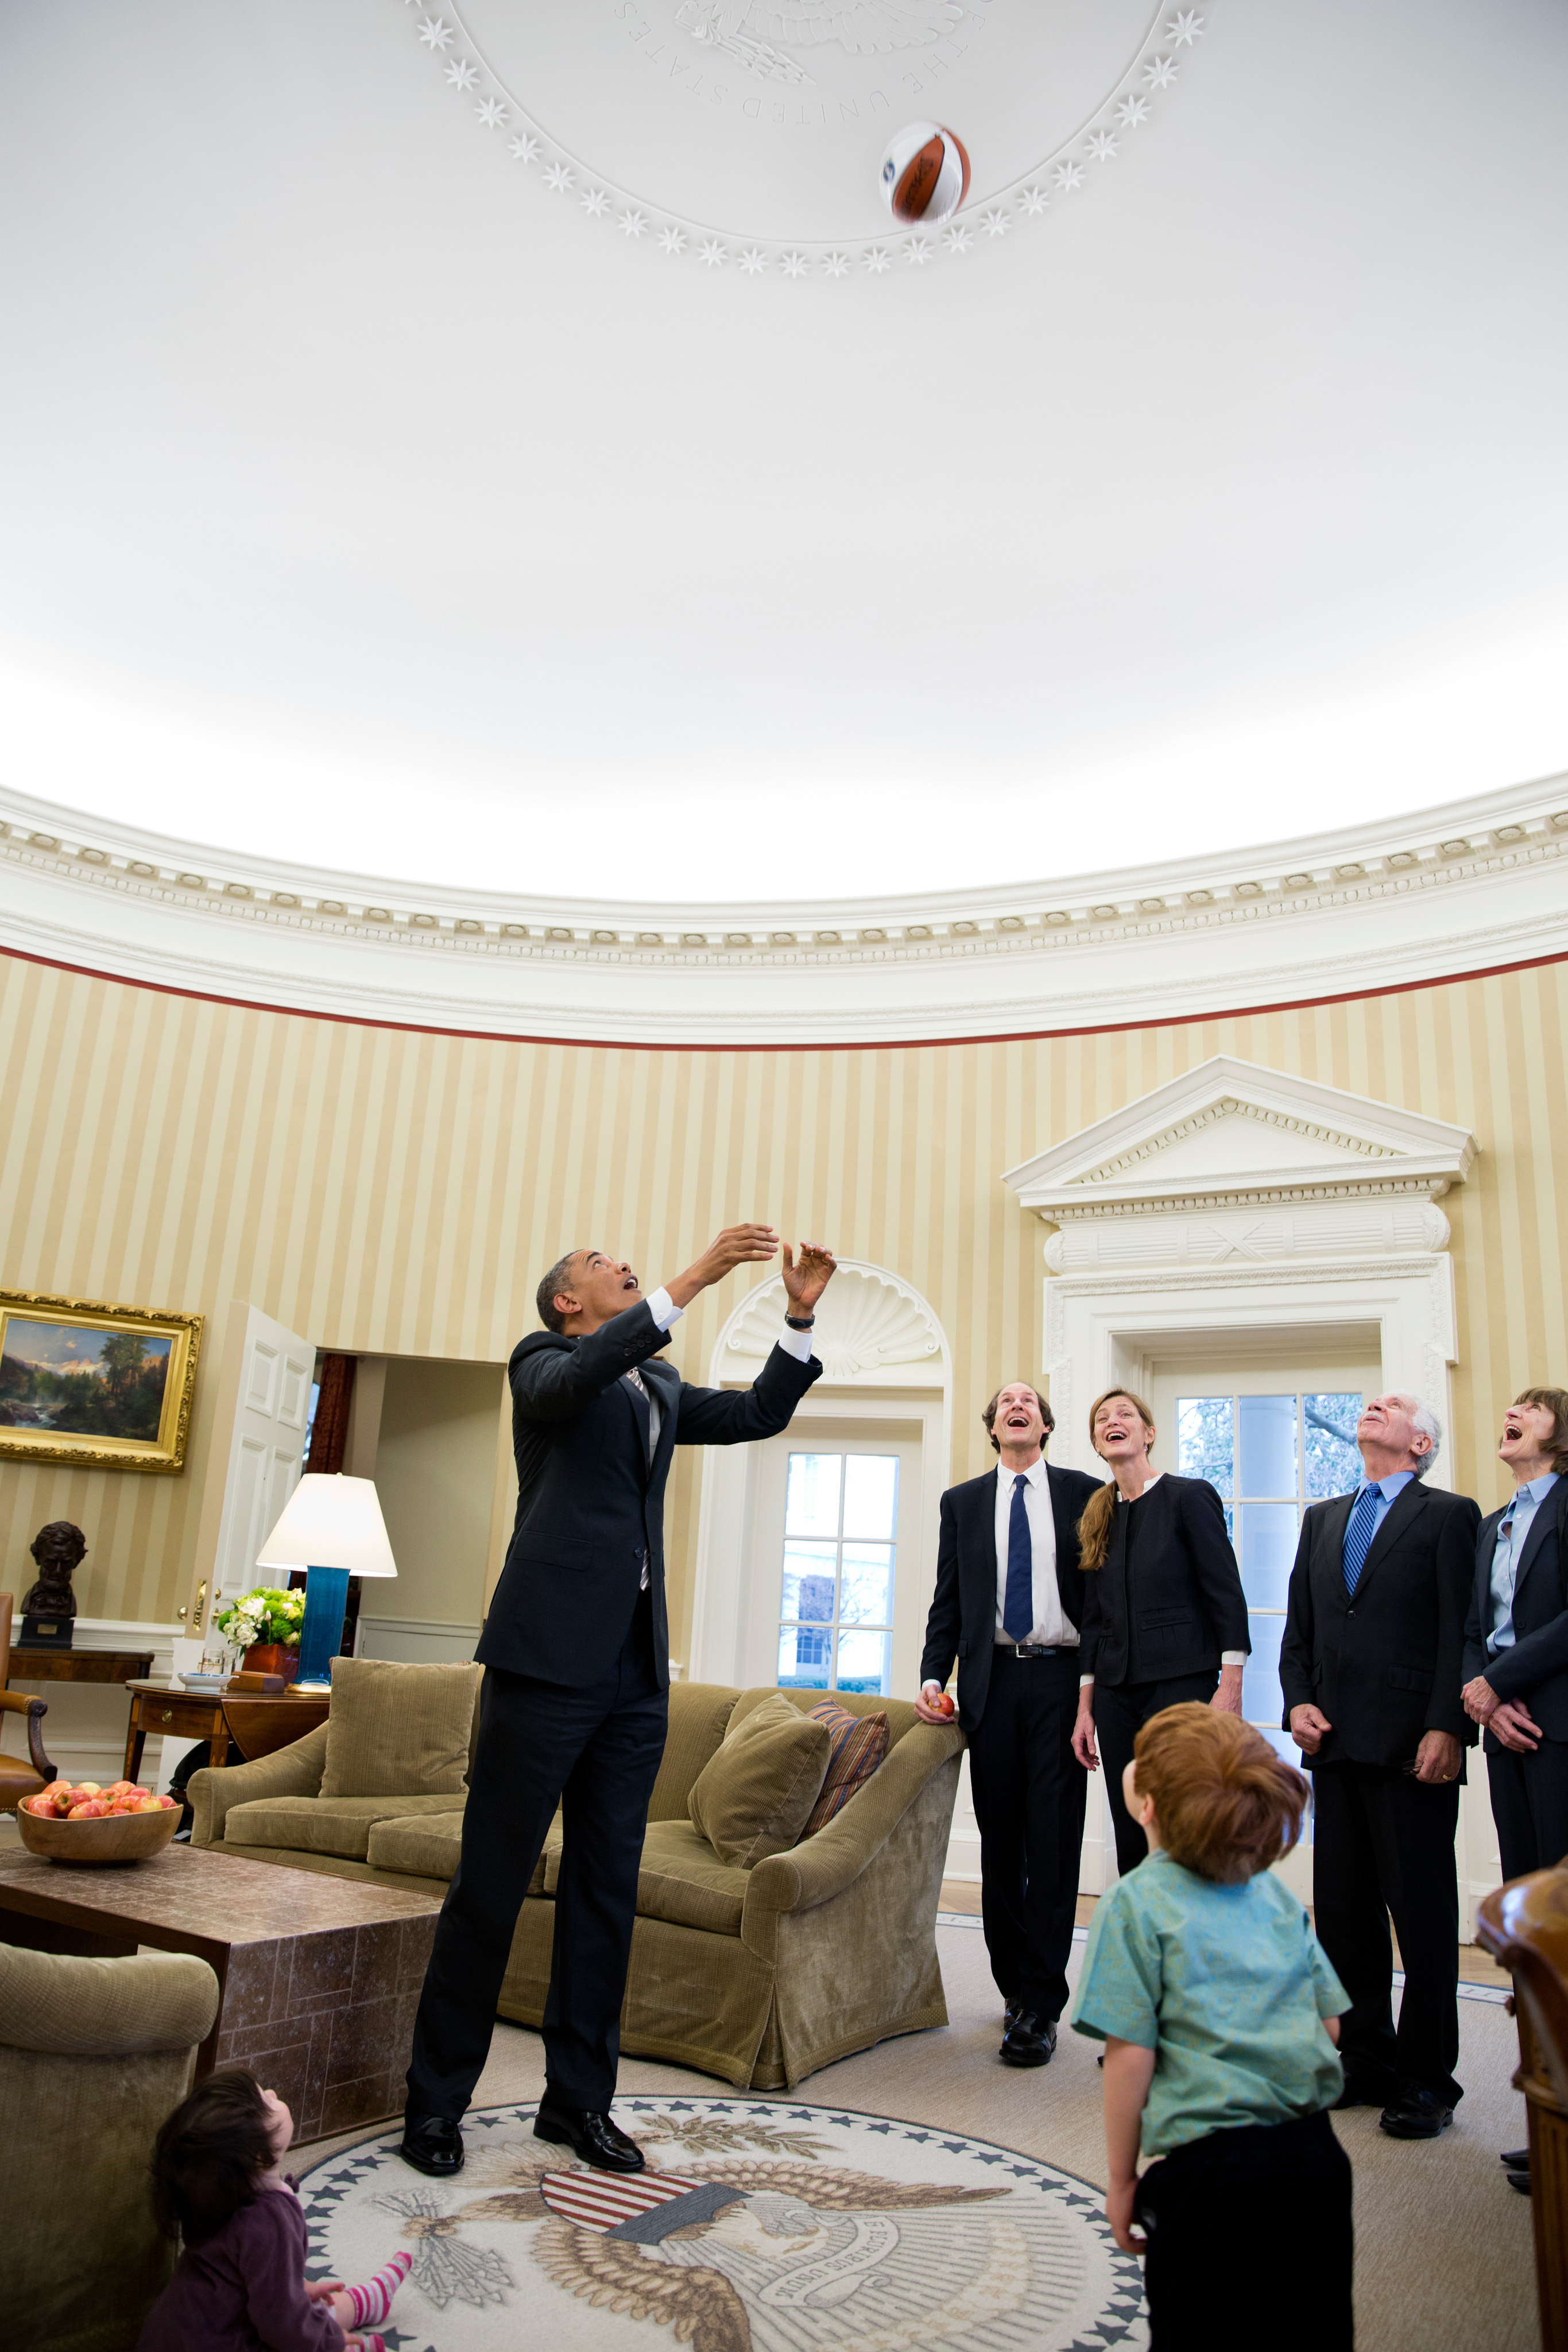 filebarack obama throws a basketball in the oval officejpg fileobama oval officejpg